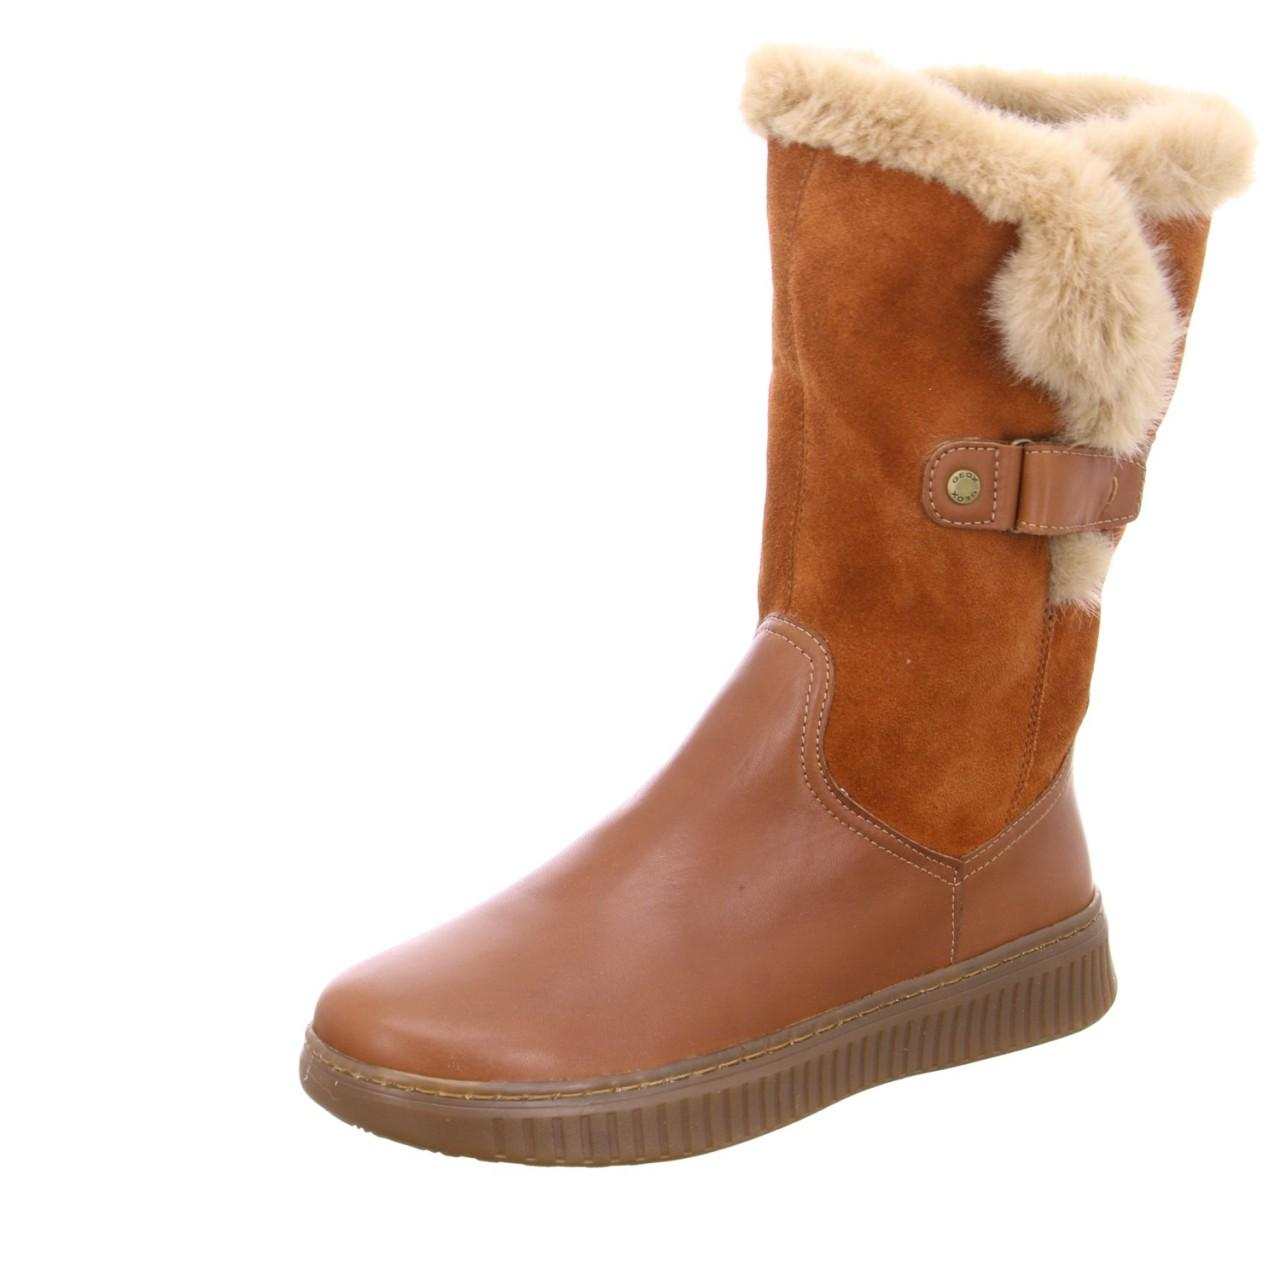 Geox Wo Winter Boots Brown in Brown - Lyst 2a6ee2ce24a